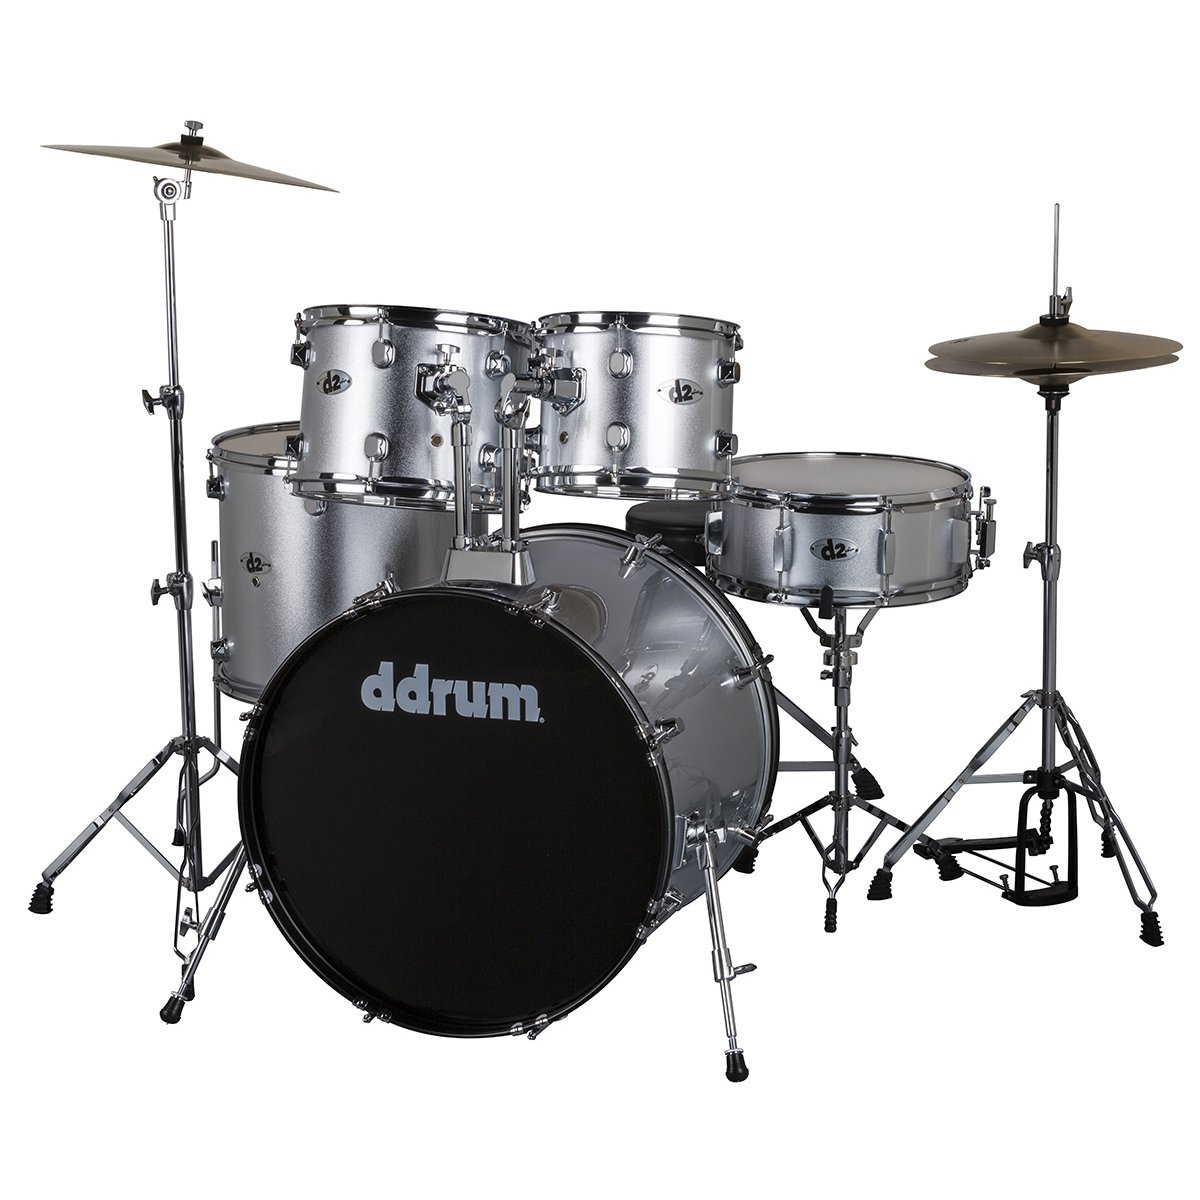 DDRUM D2 Drum Set 5 pc Complete with Hardware, Cymbals, Sticks, Throne - Silver Sparkle